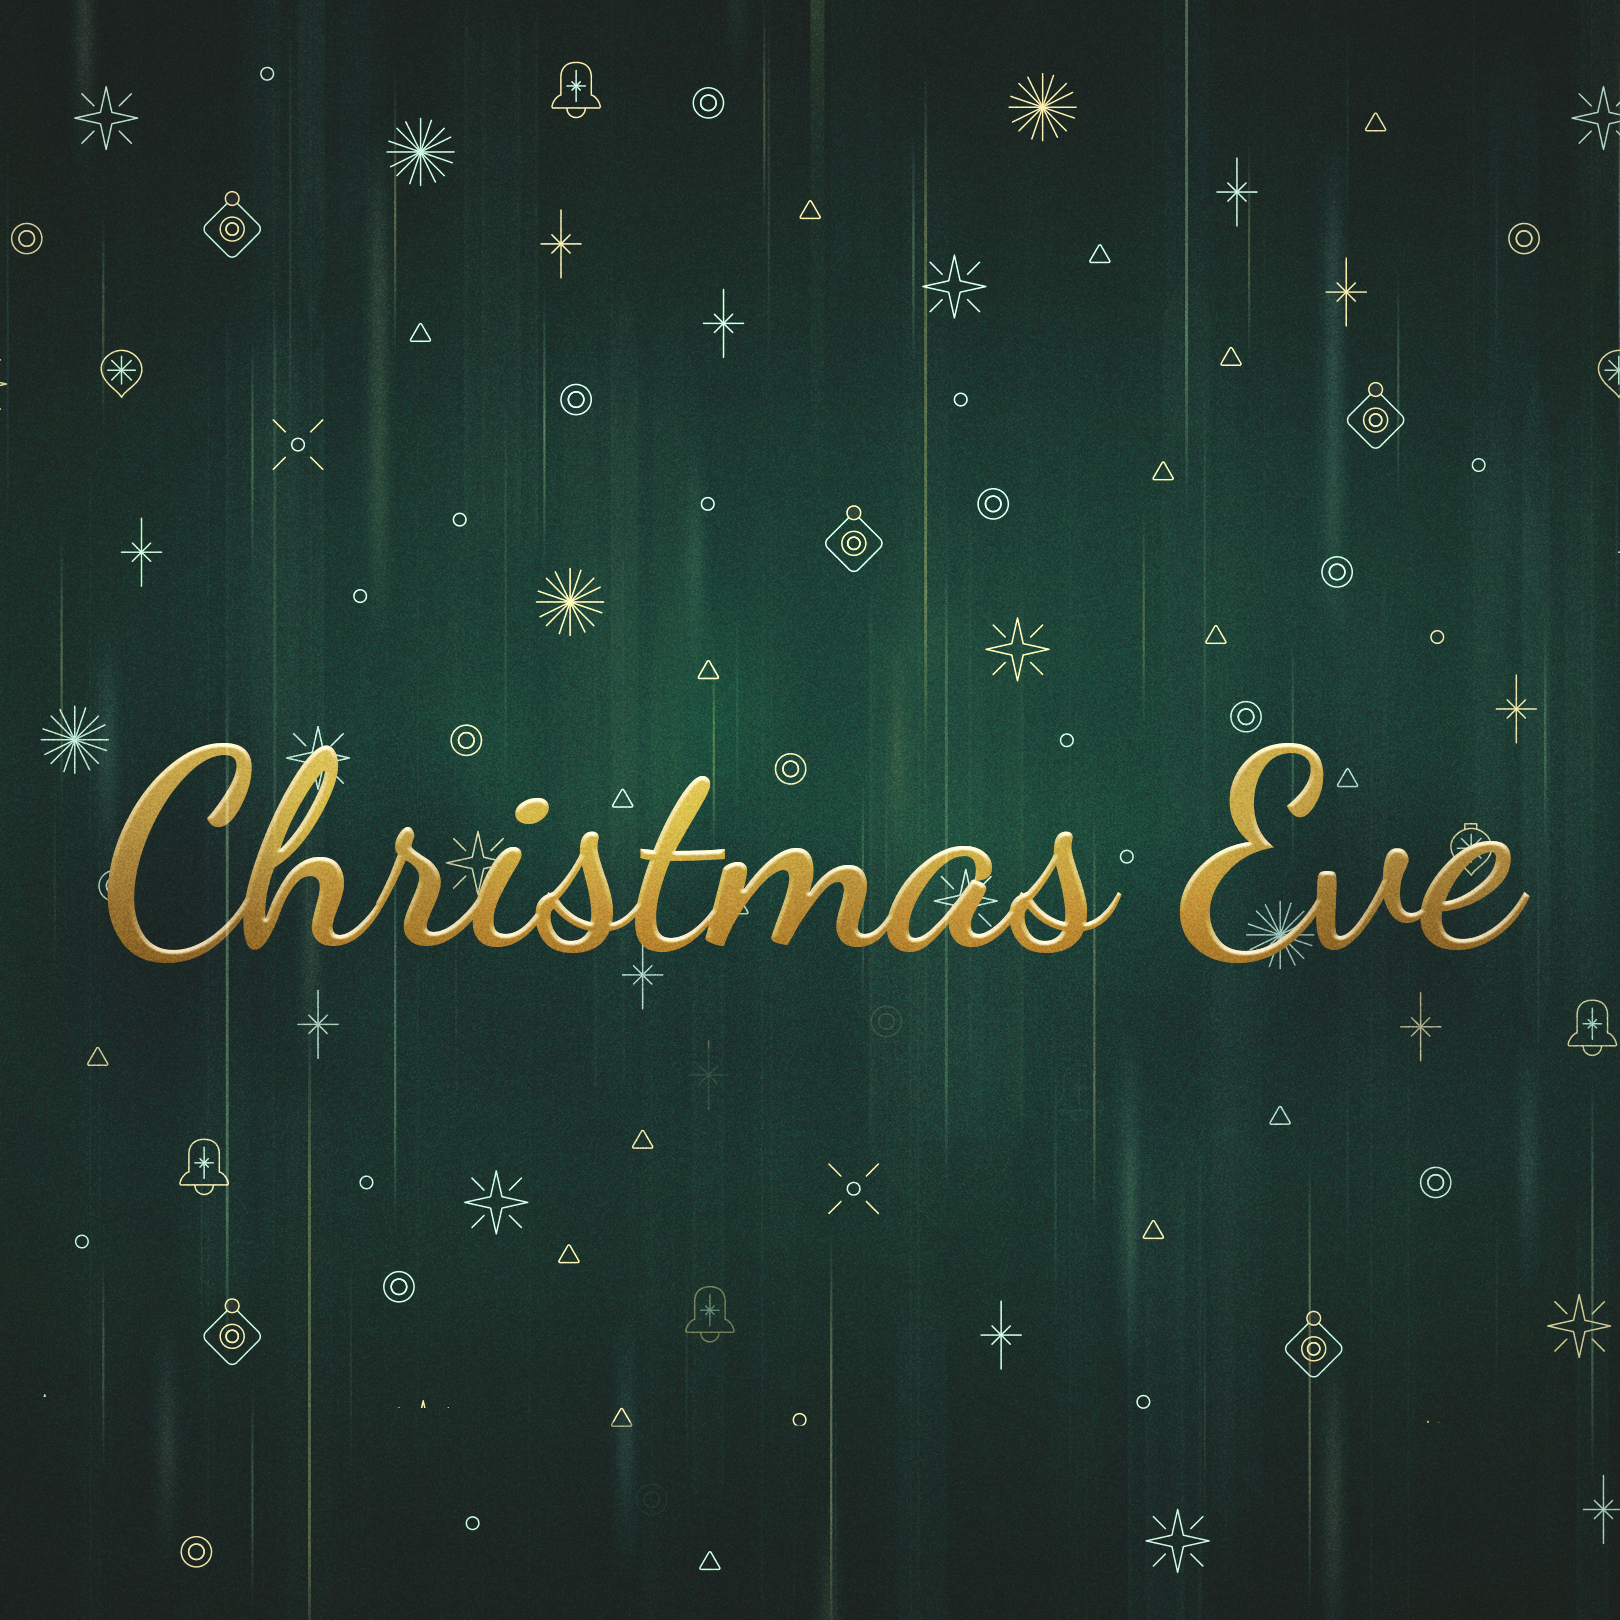 Christmas Eve Wallpapers Images Photos Pictures Backgrounds